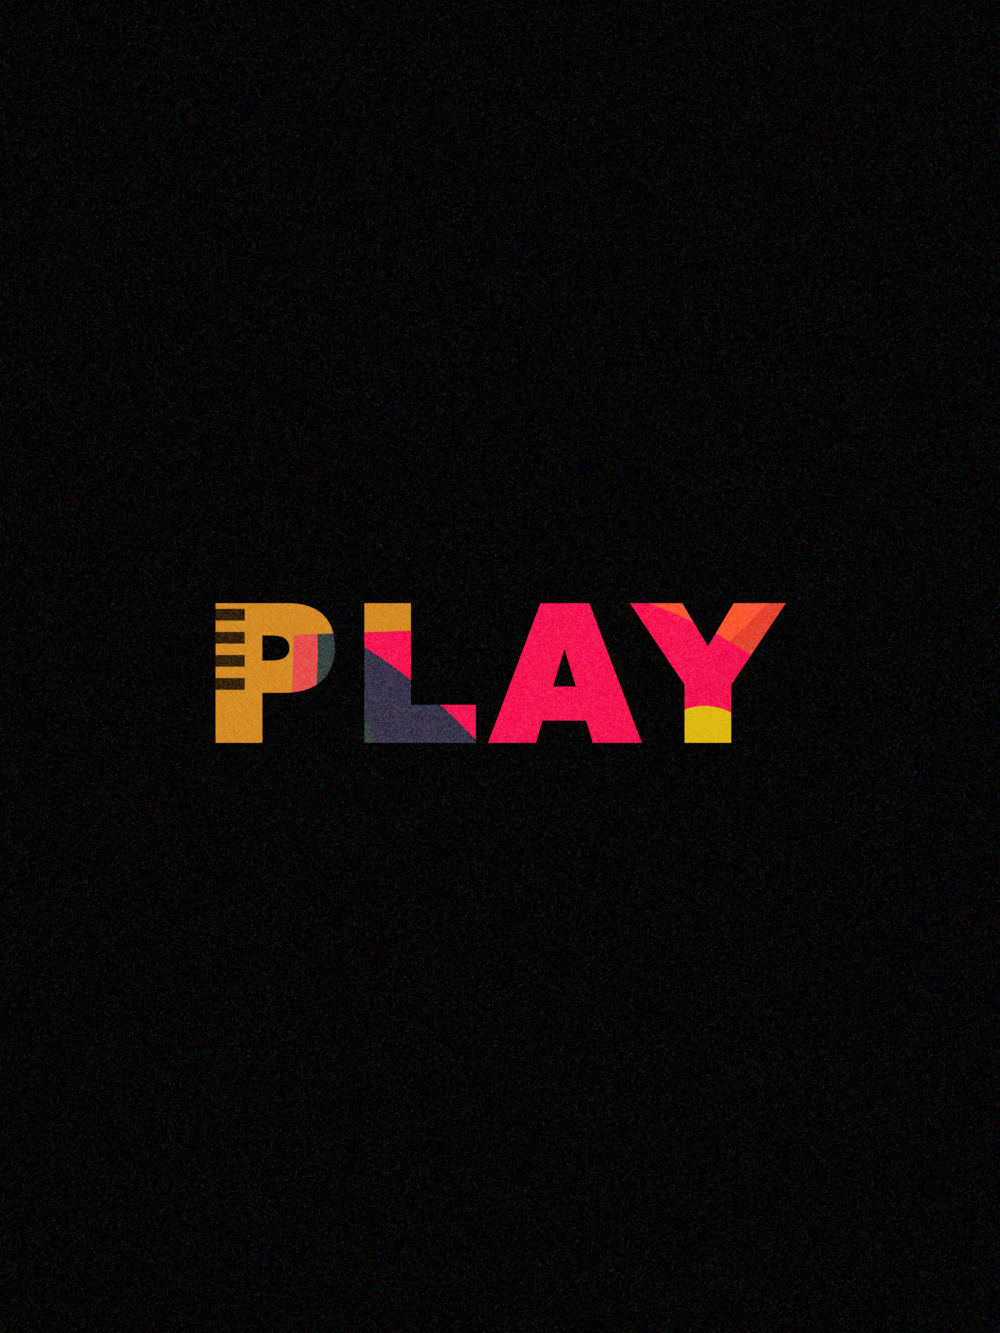 Abstract_Play (0001).png